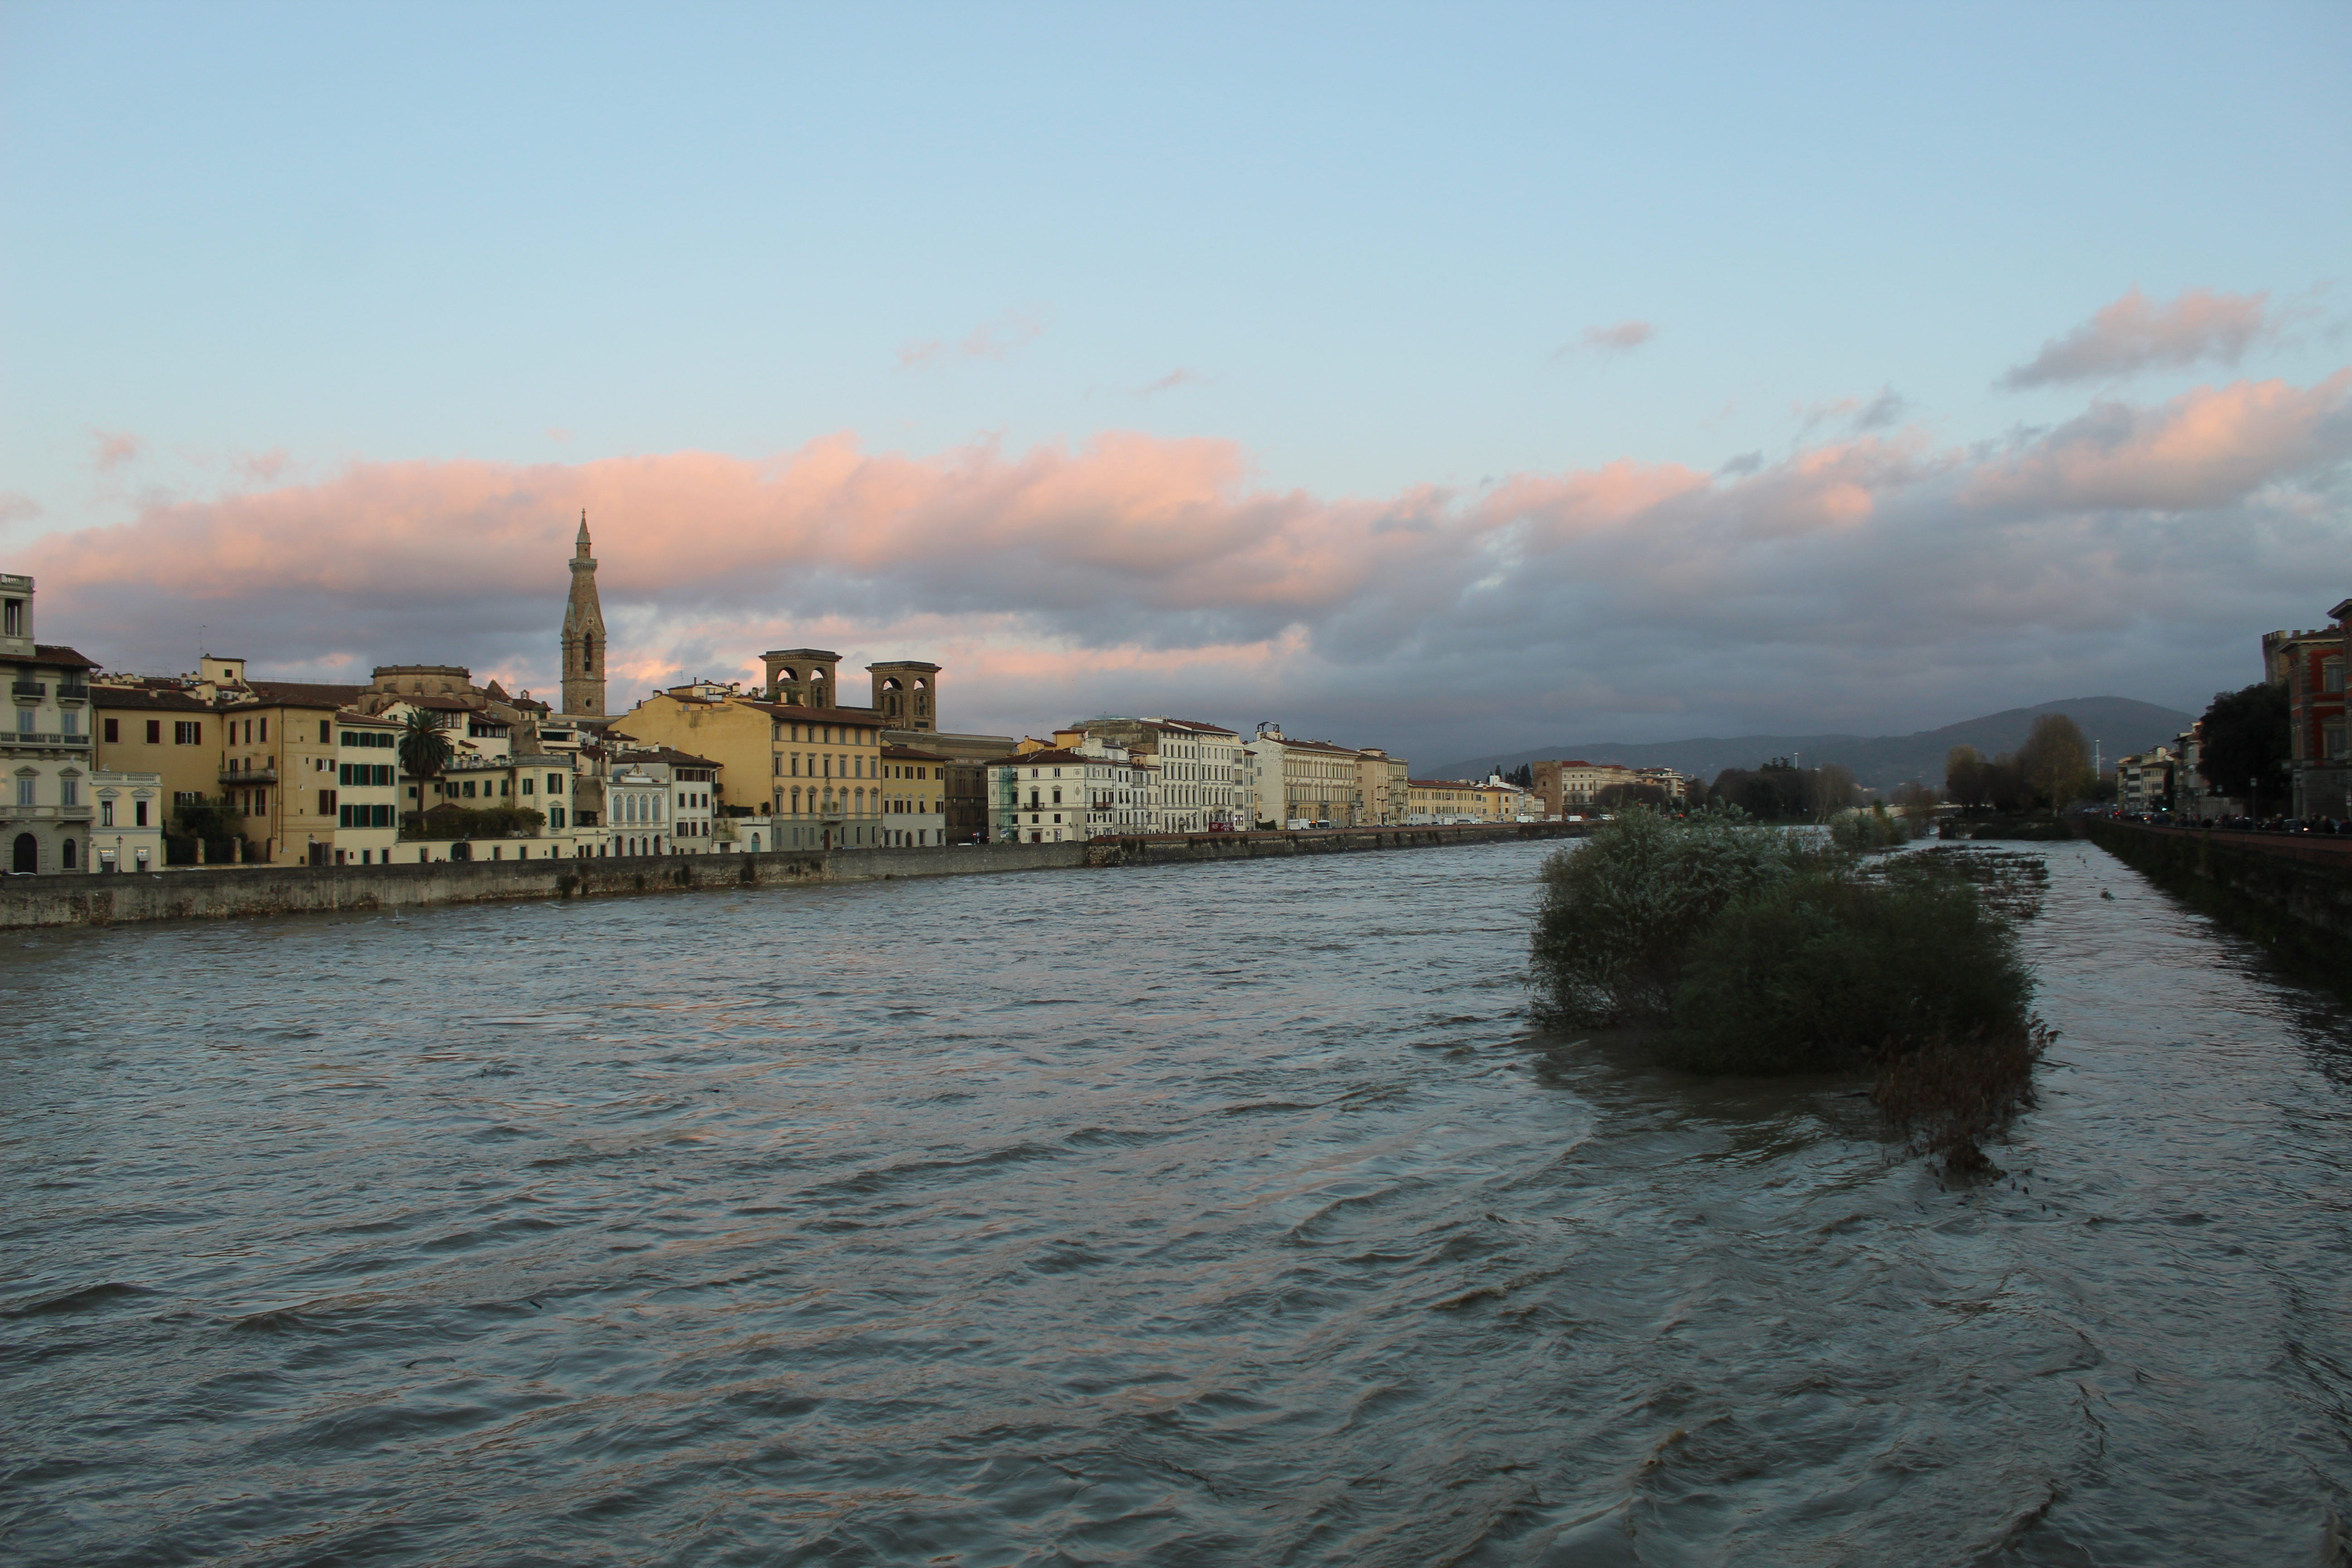 Arno River in winter